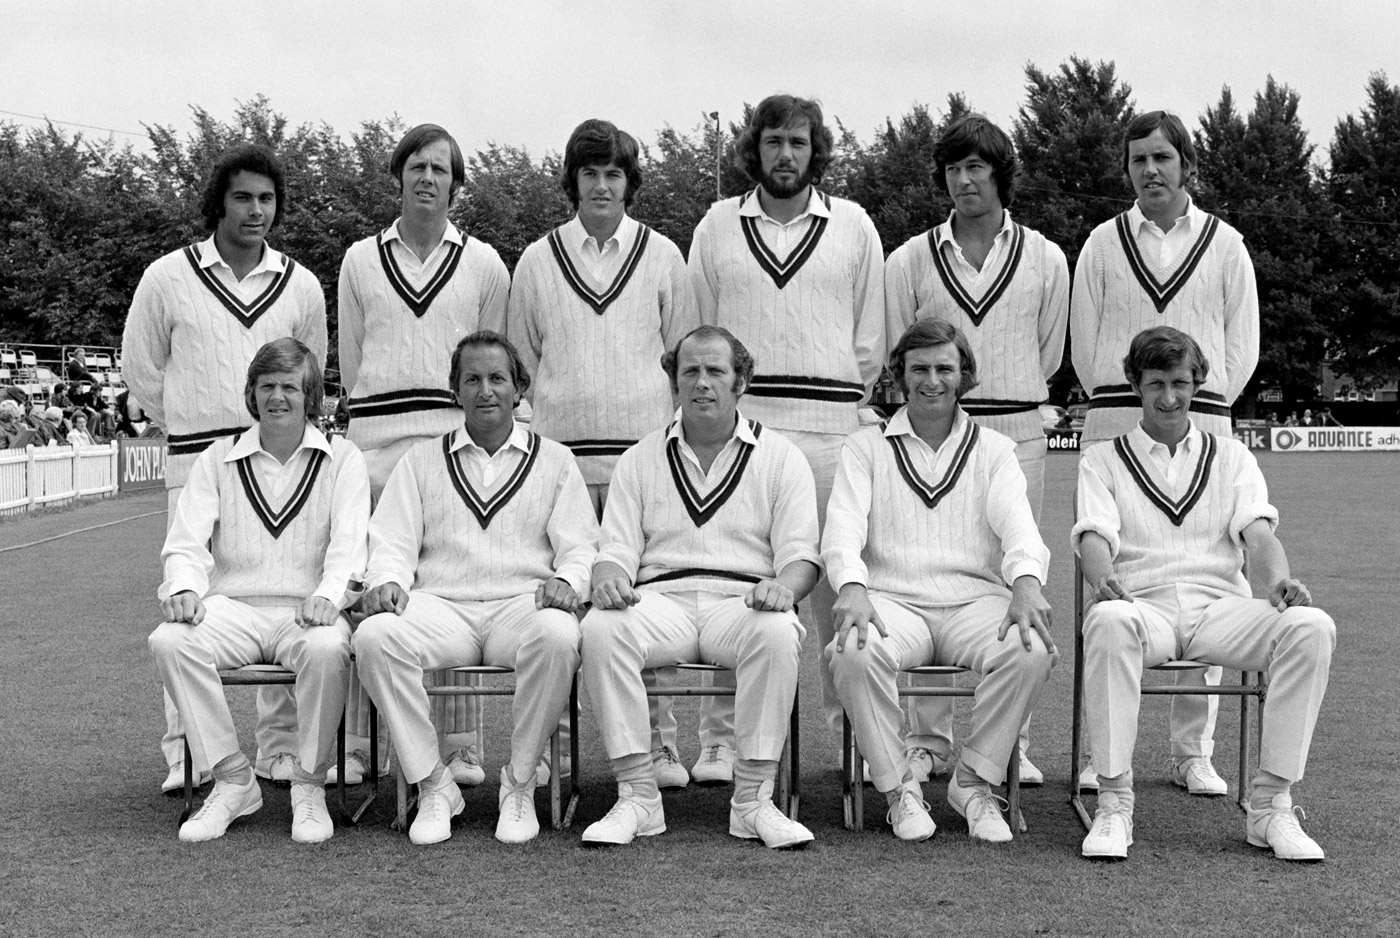 Imran (standing, second from right) and John Parker (fourth from right) with the 1973 Worcestershire squad